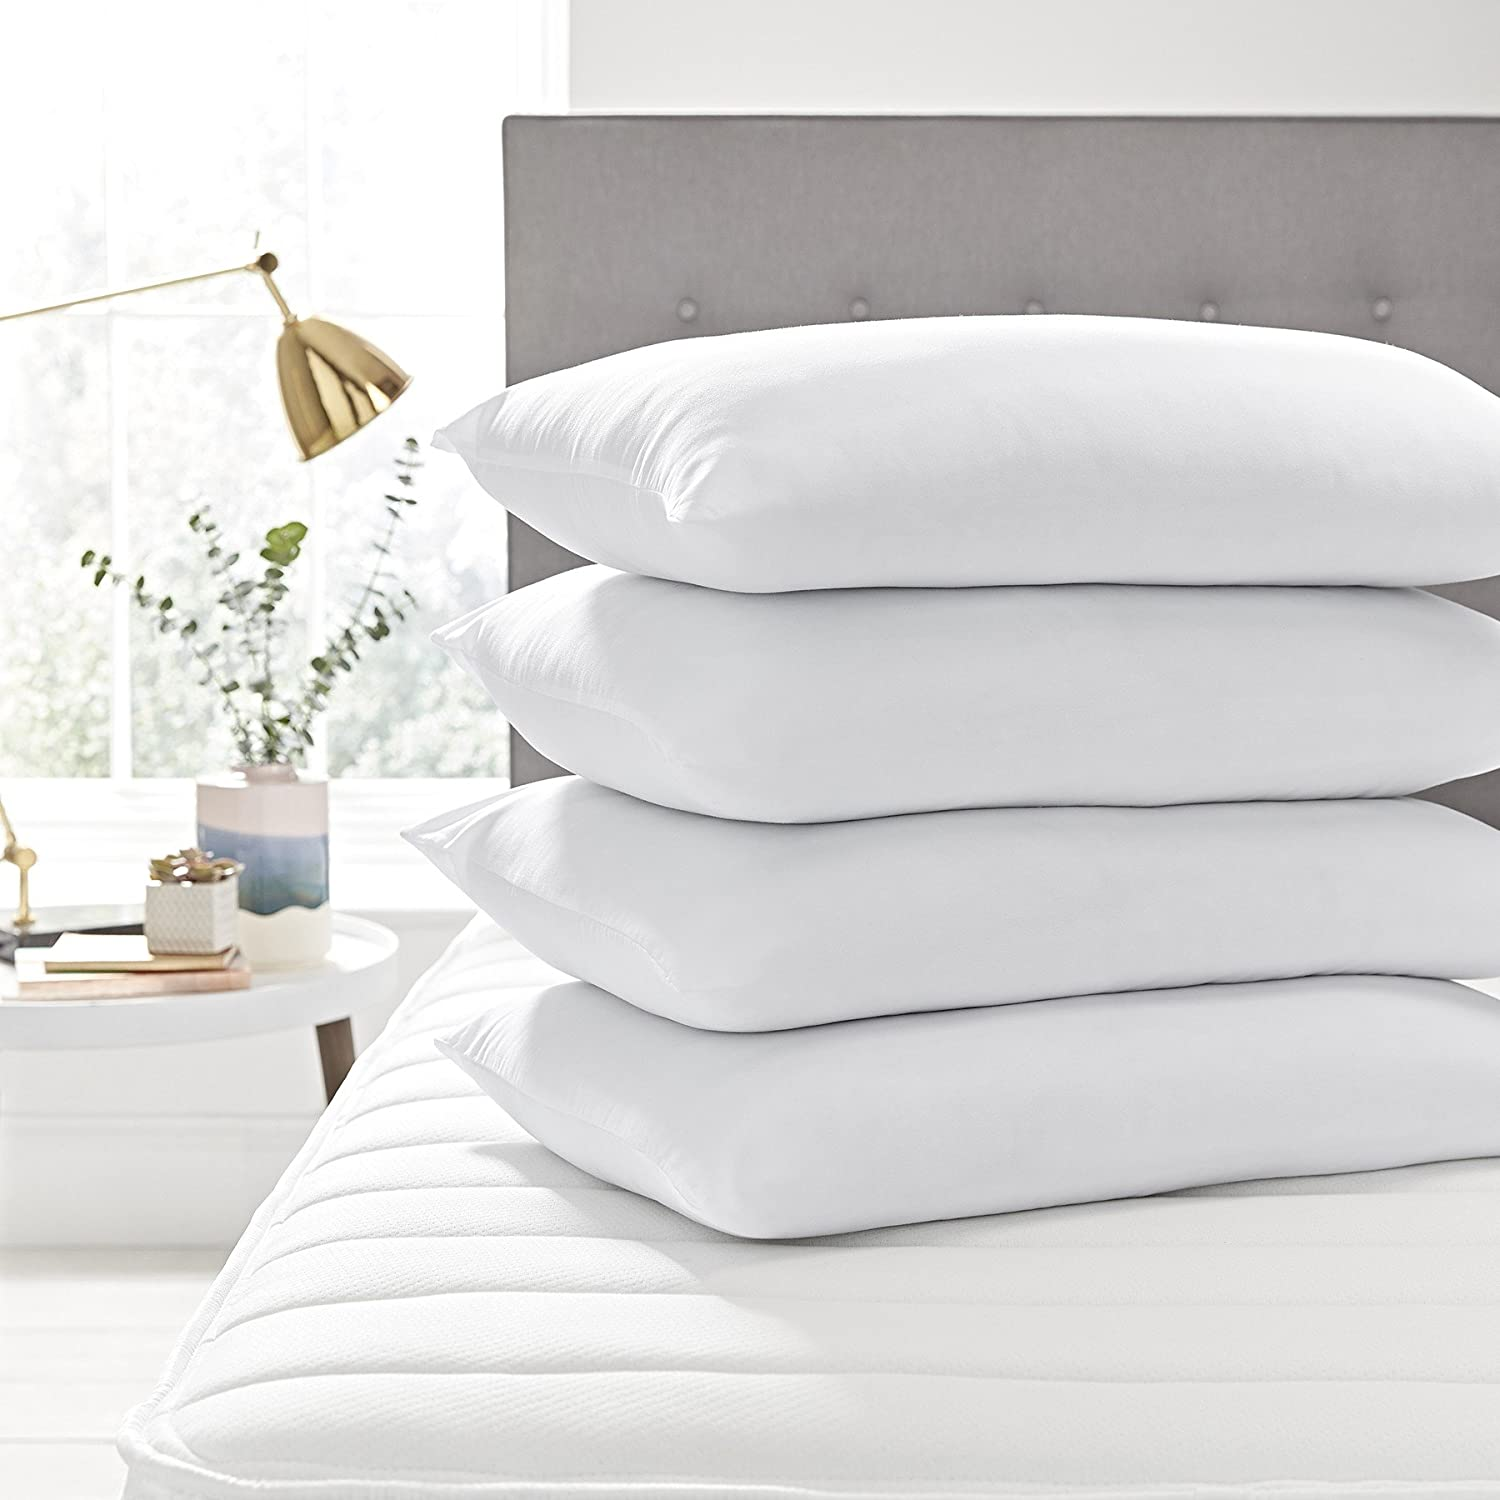 Brand New - Pack of 4 Pillow Protectors Covers Cases - Mildew Proof - Anti Allergy - White- Anti dustmite-Anti Bacterial-Hypoallergenic - Stain Resistant - Machine Washable - Standard Size Aaf Textiles